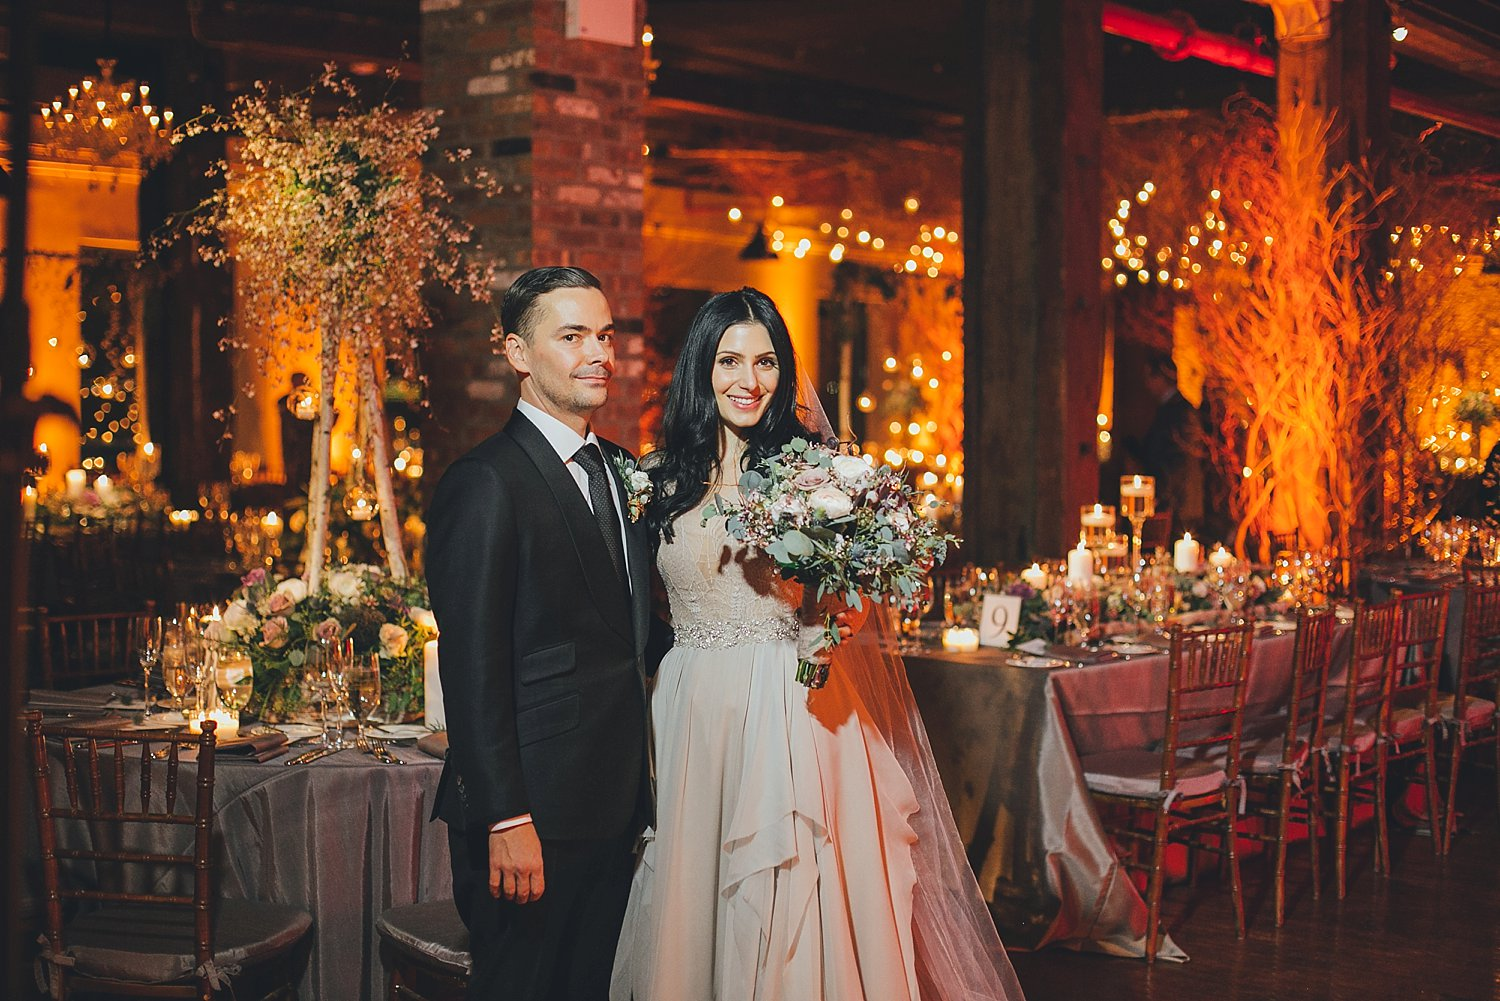 nyc-wedding-photography-nj-tri-state-cinematography-intothestory-by-moo-jae_0203.jpg